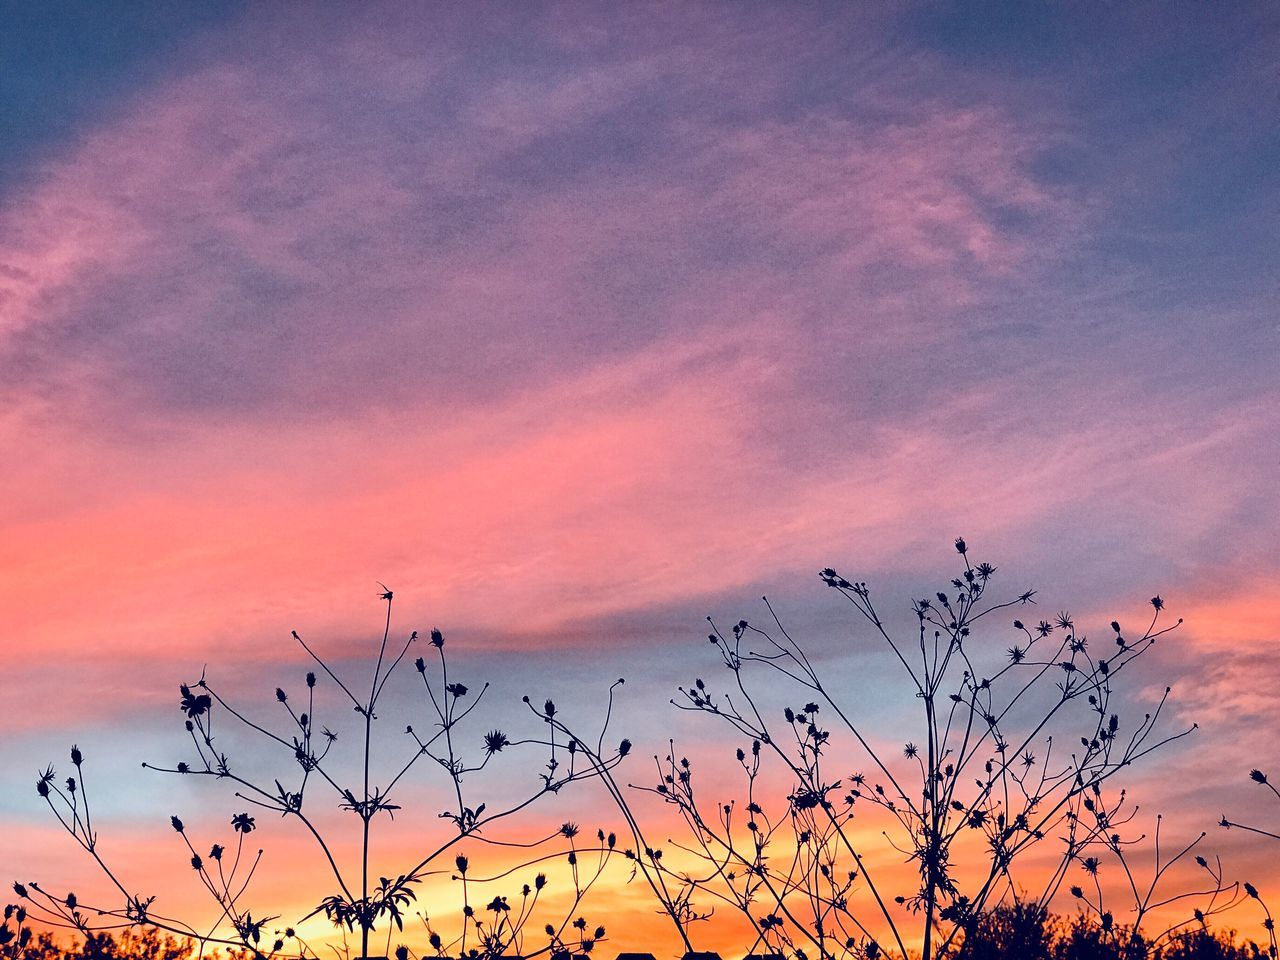 sunset, orange color, beauty in nature, nature, sky, pink color, scenics, tranquil scene, no people, silhouette, cloud - sky, outdoors, growth, bird, day